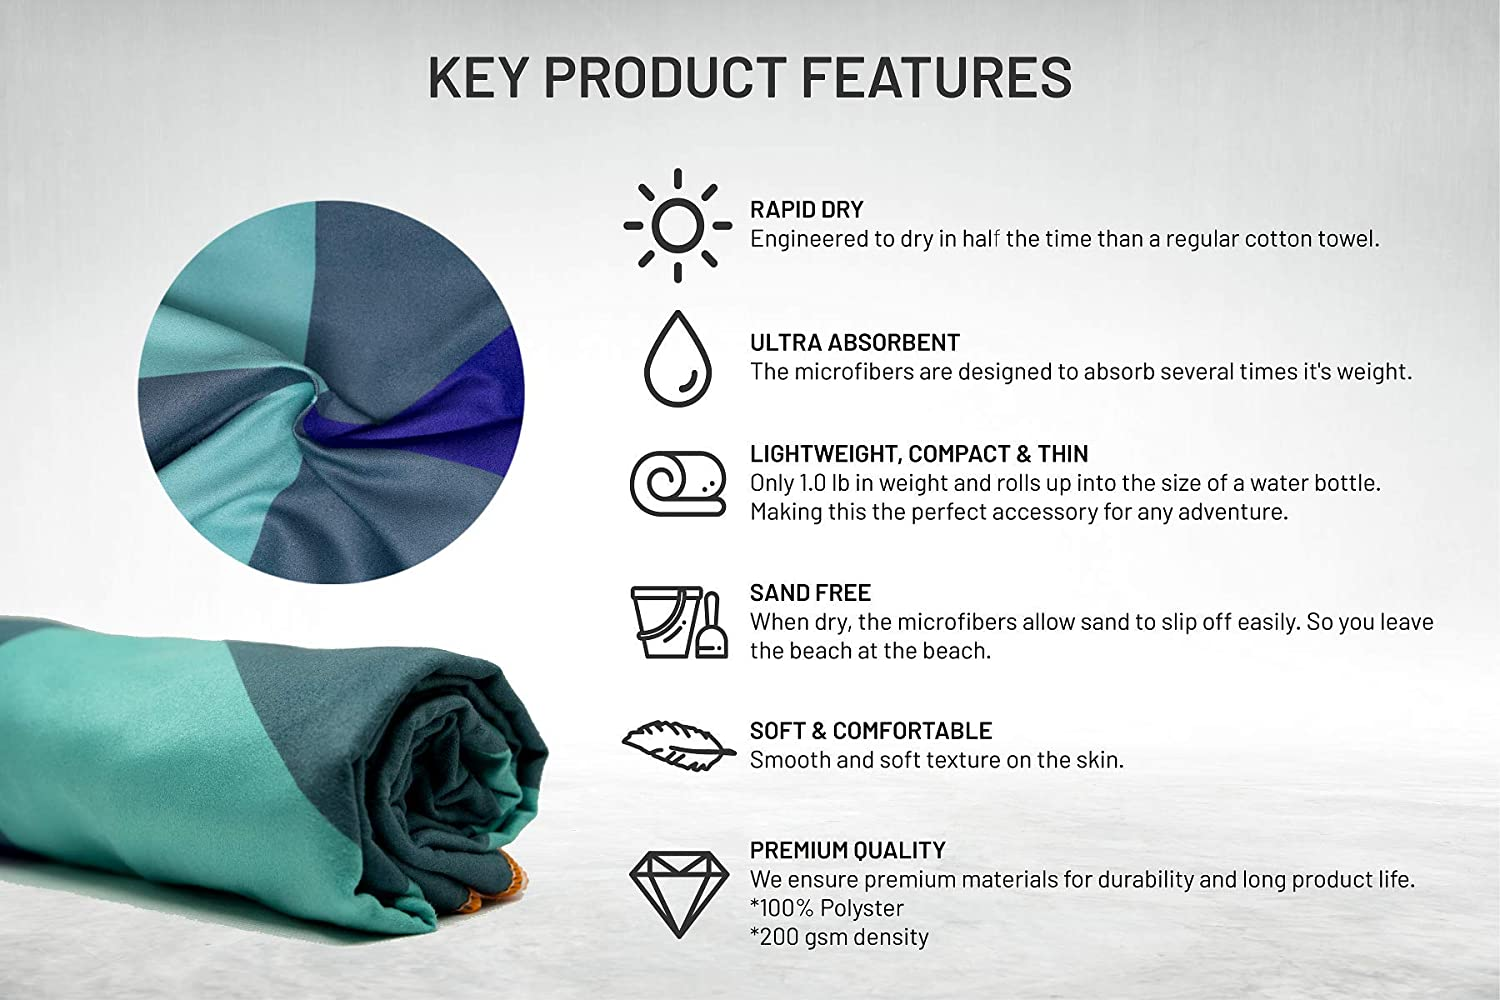 Microfiber Beach Towel by Pangea Yoga Gym Body Hair Thin XL Extra Large Quick Dry Ultralight Good for Travel